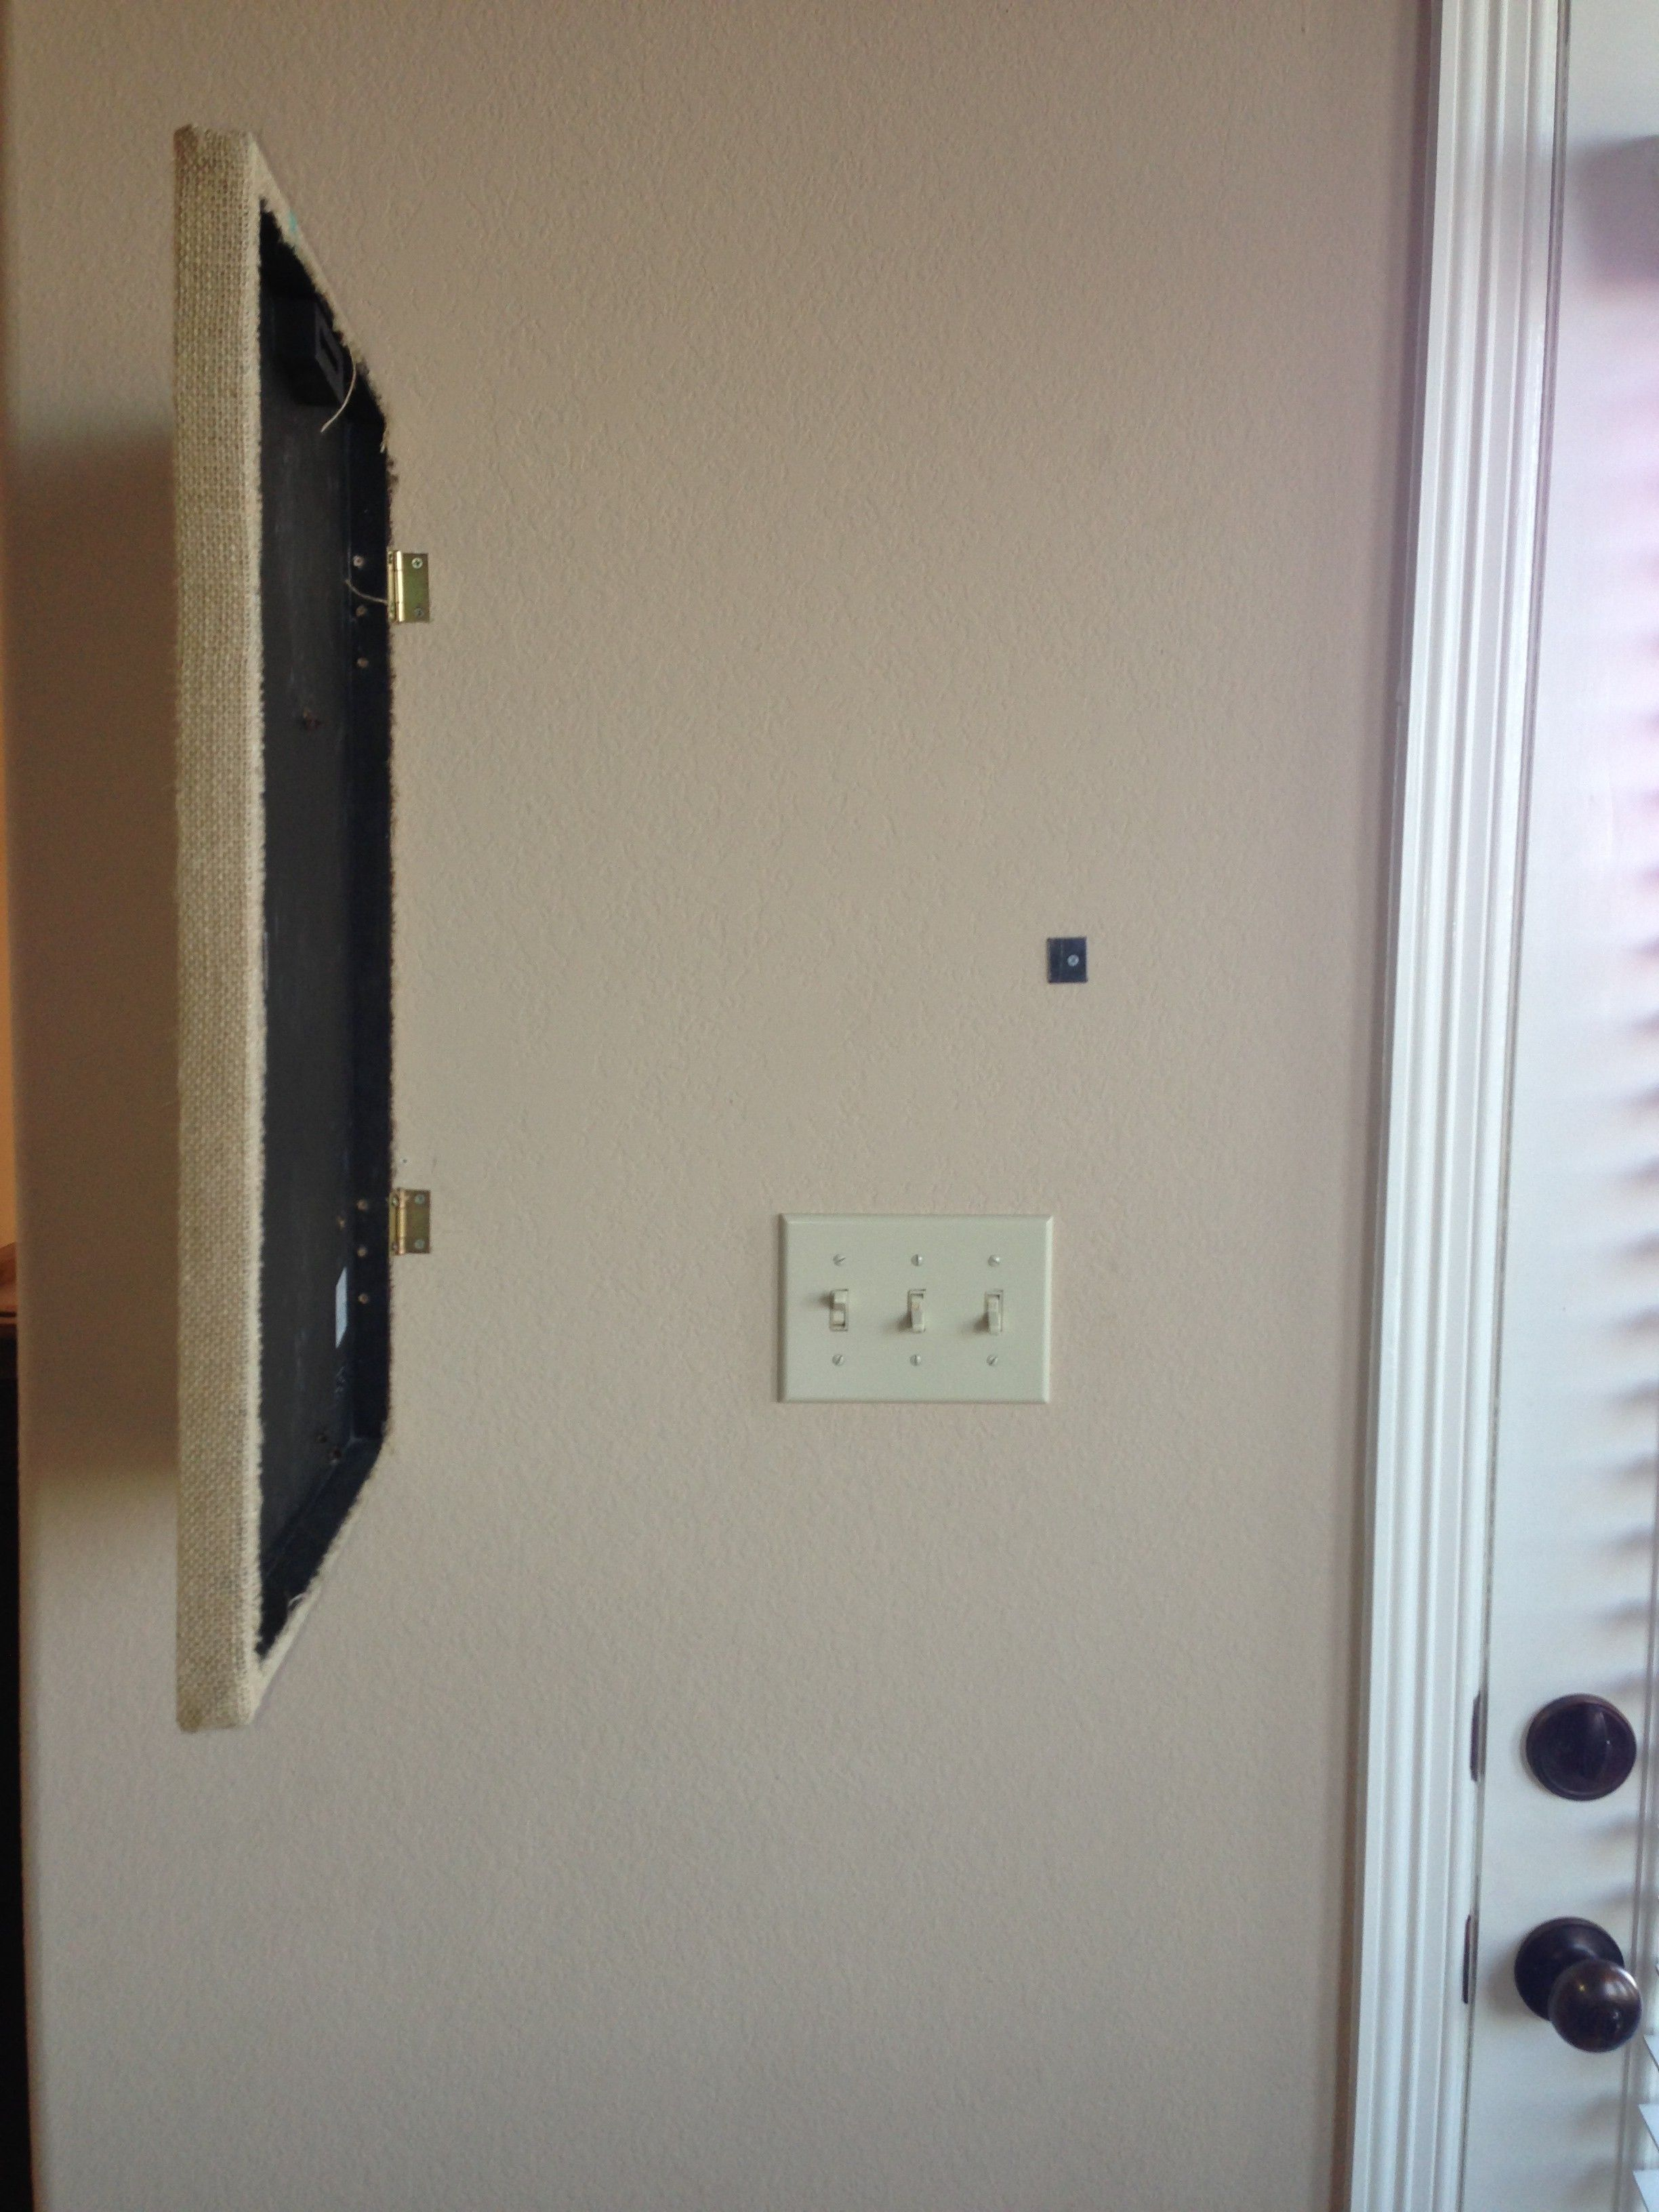 hight resolution of how to hide light switches or anything you don t want seen